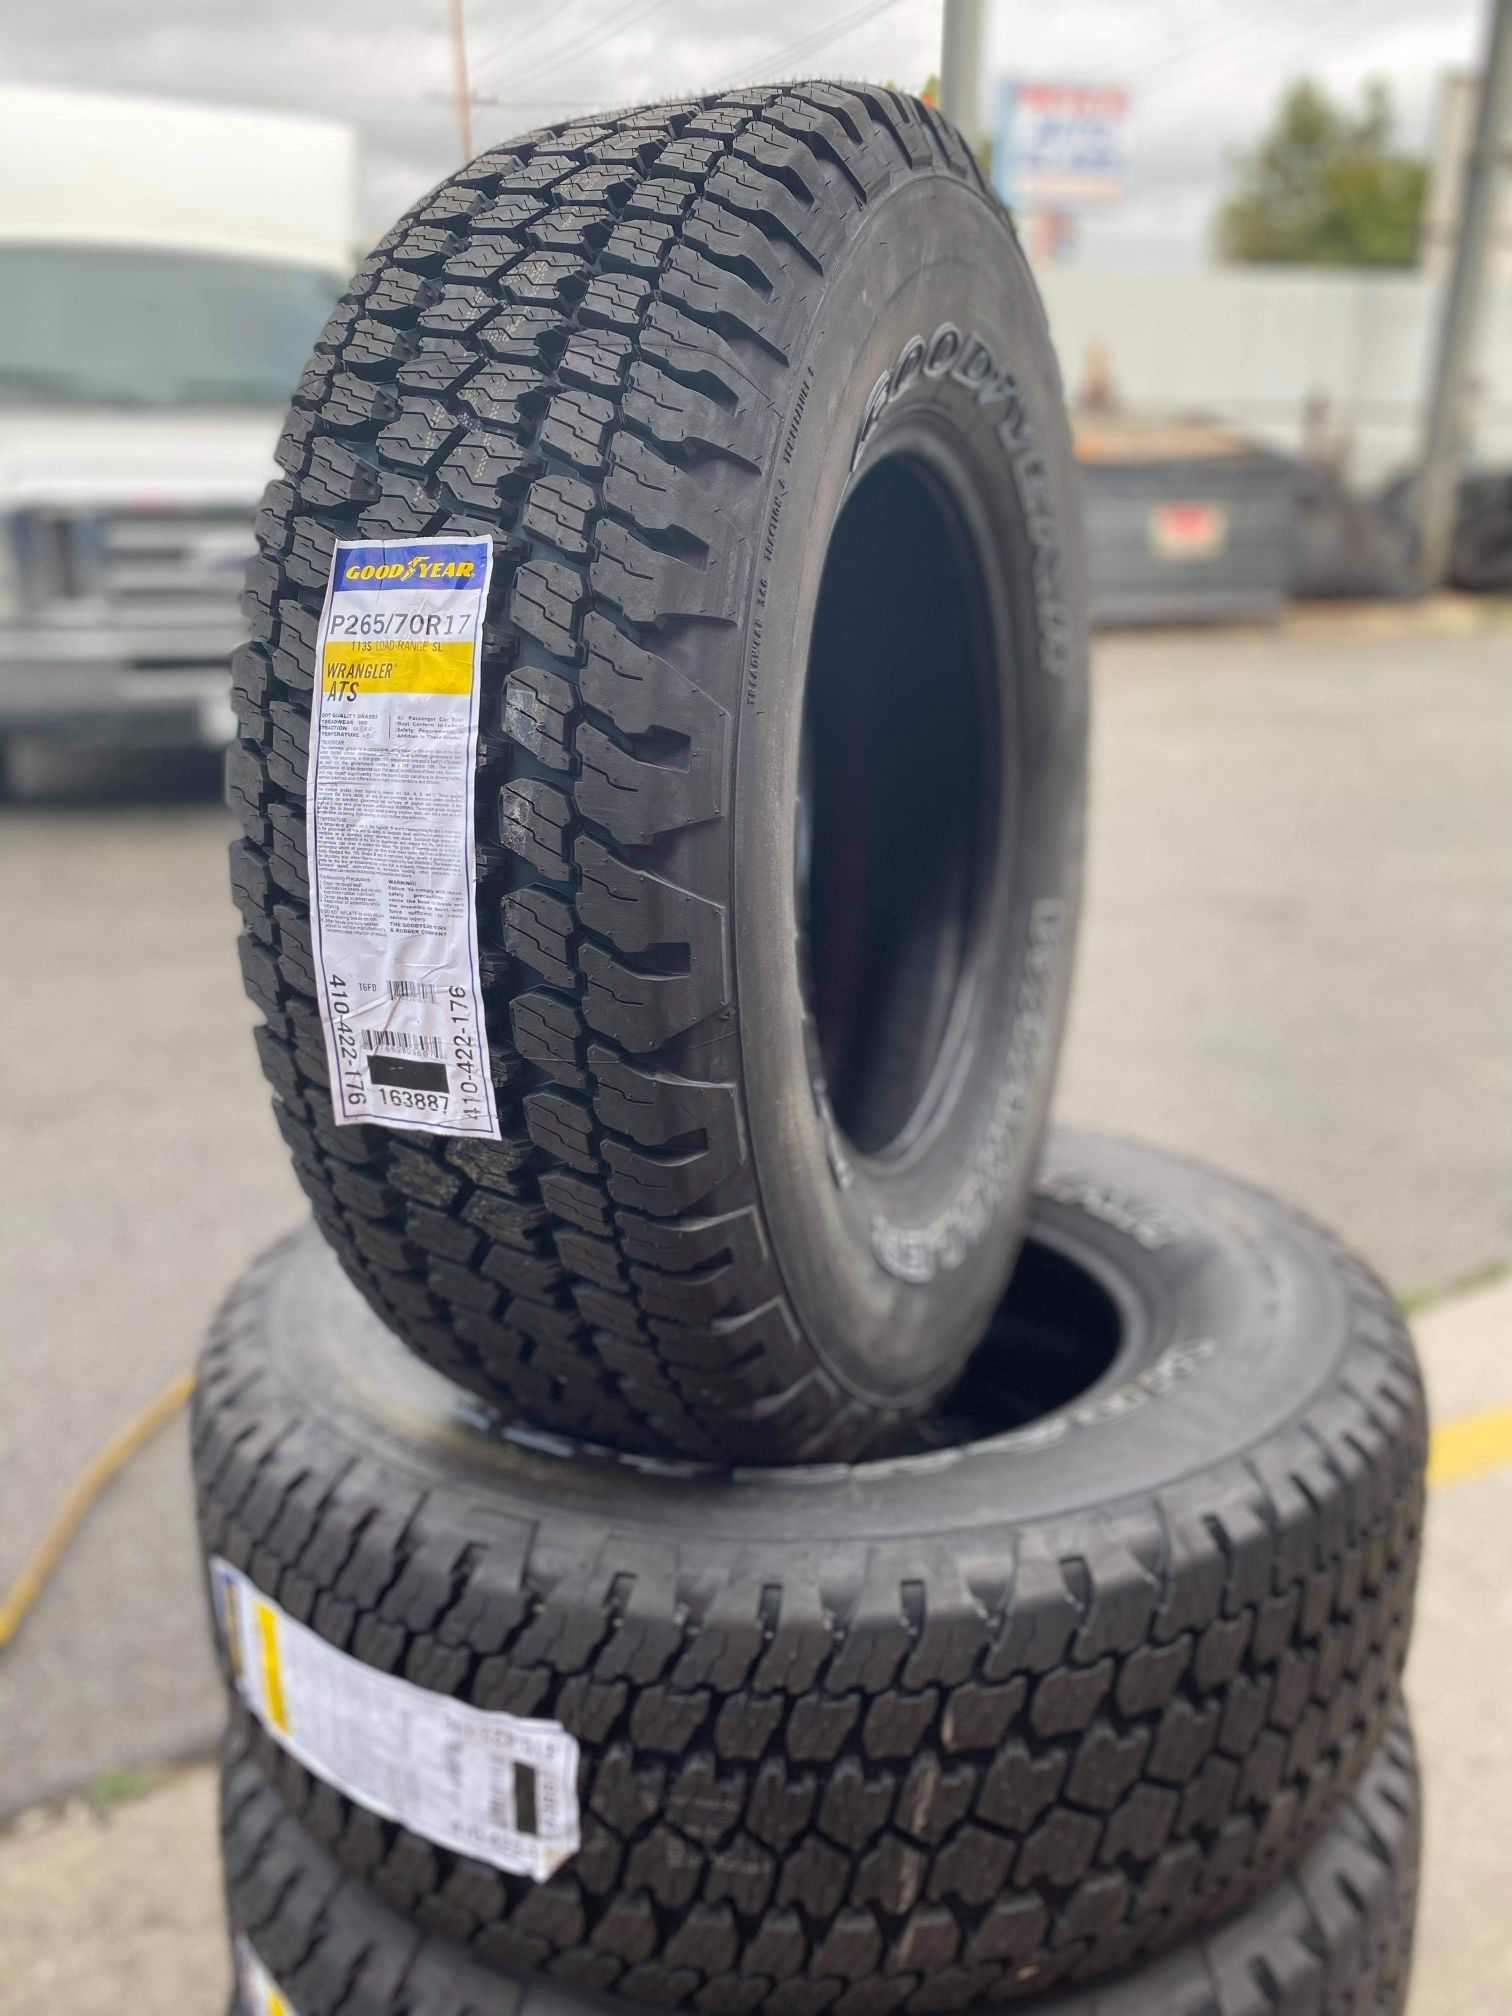 265/70/17 GOODYEAR Wranglers New Tires